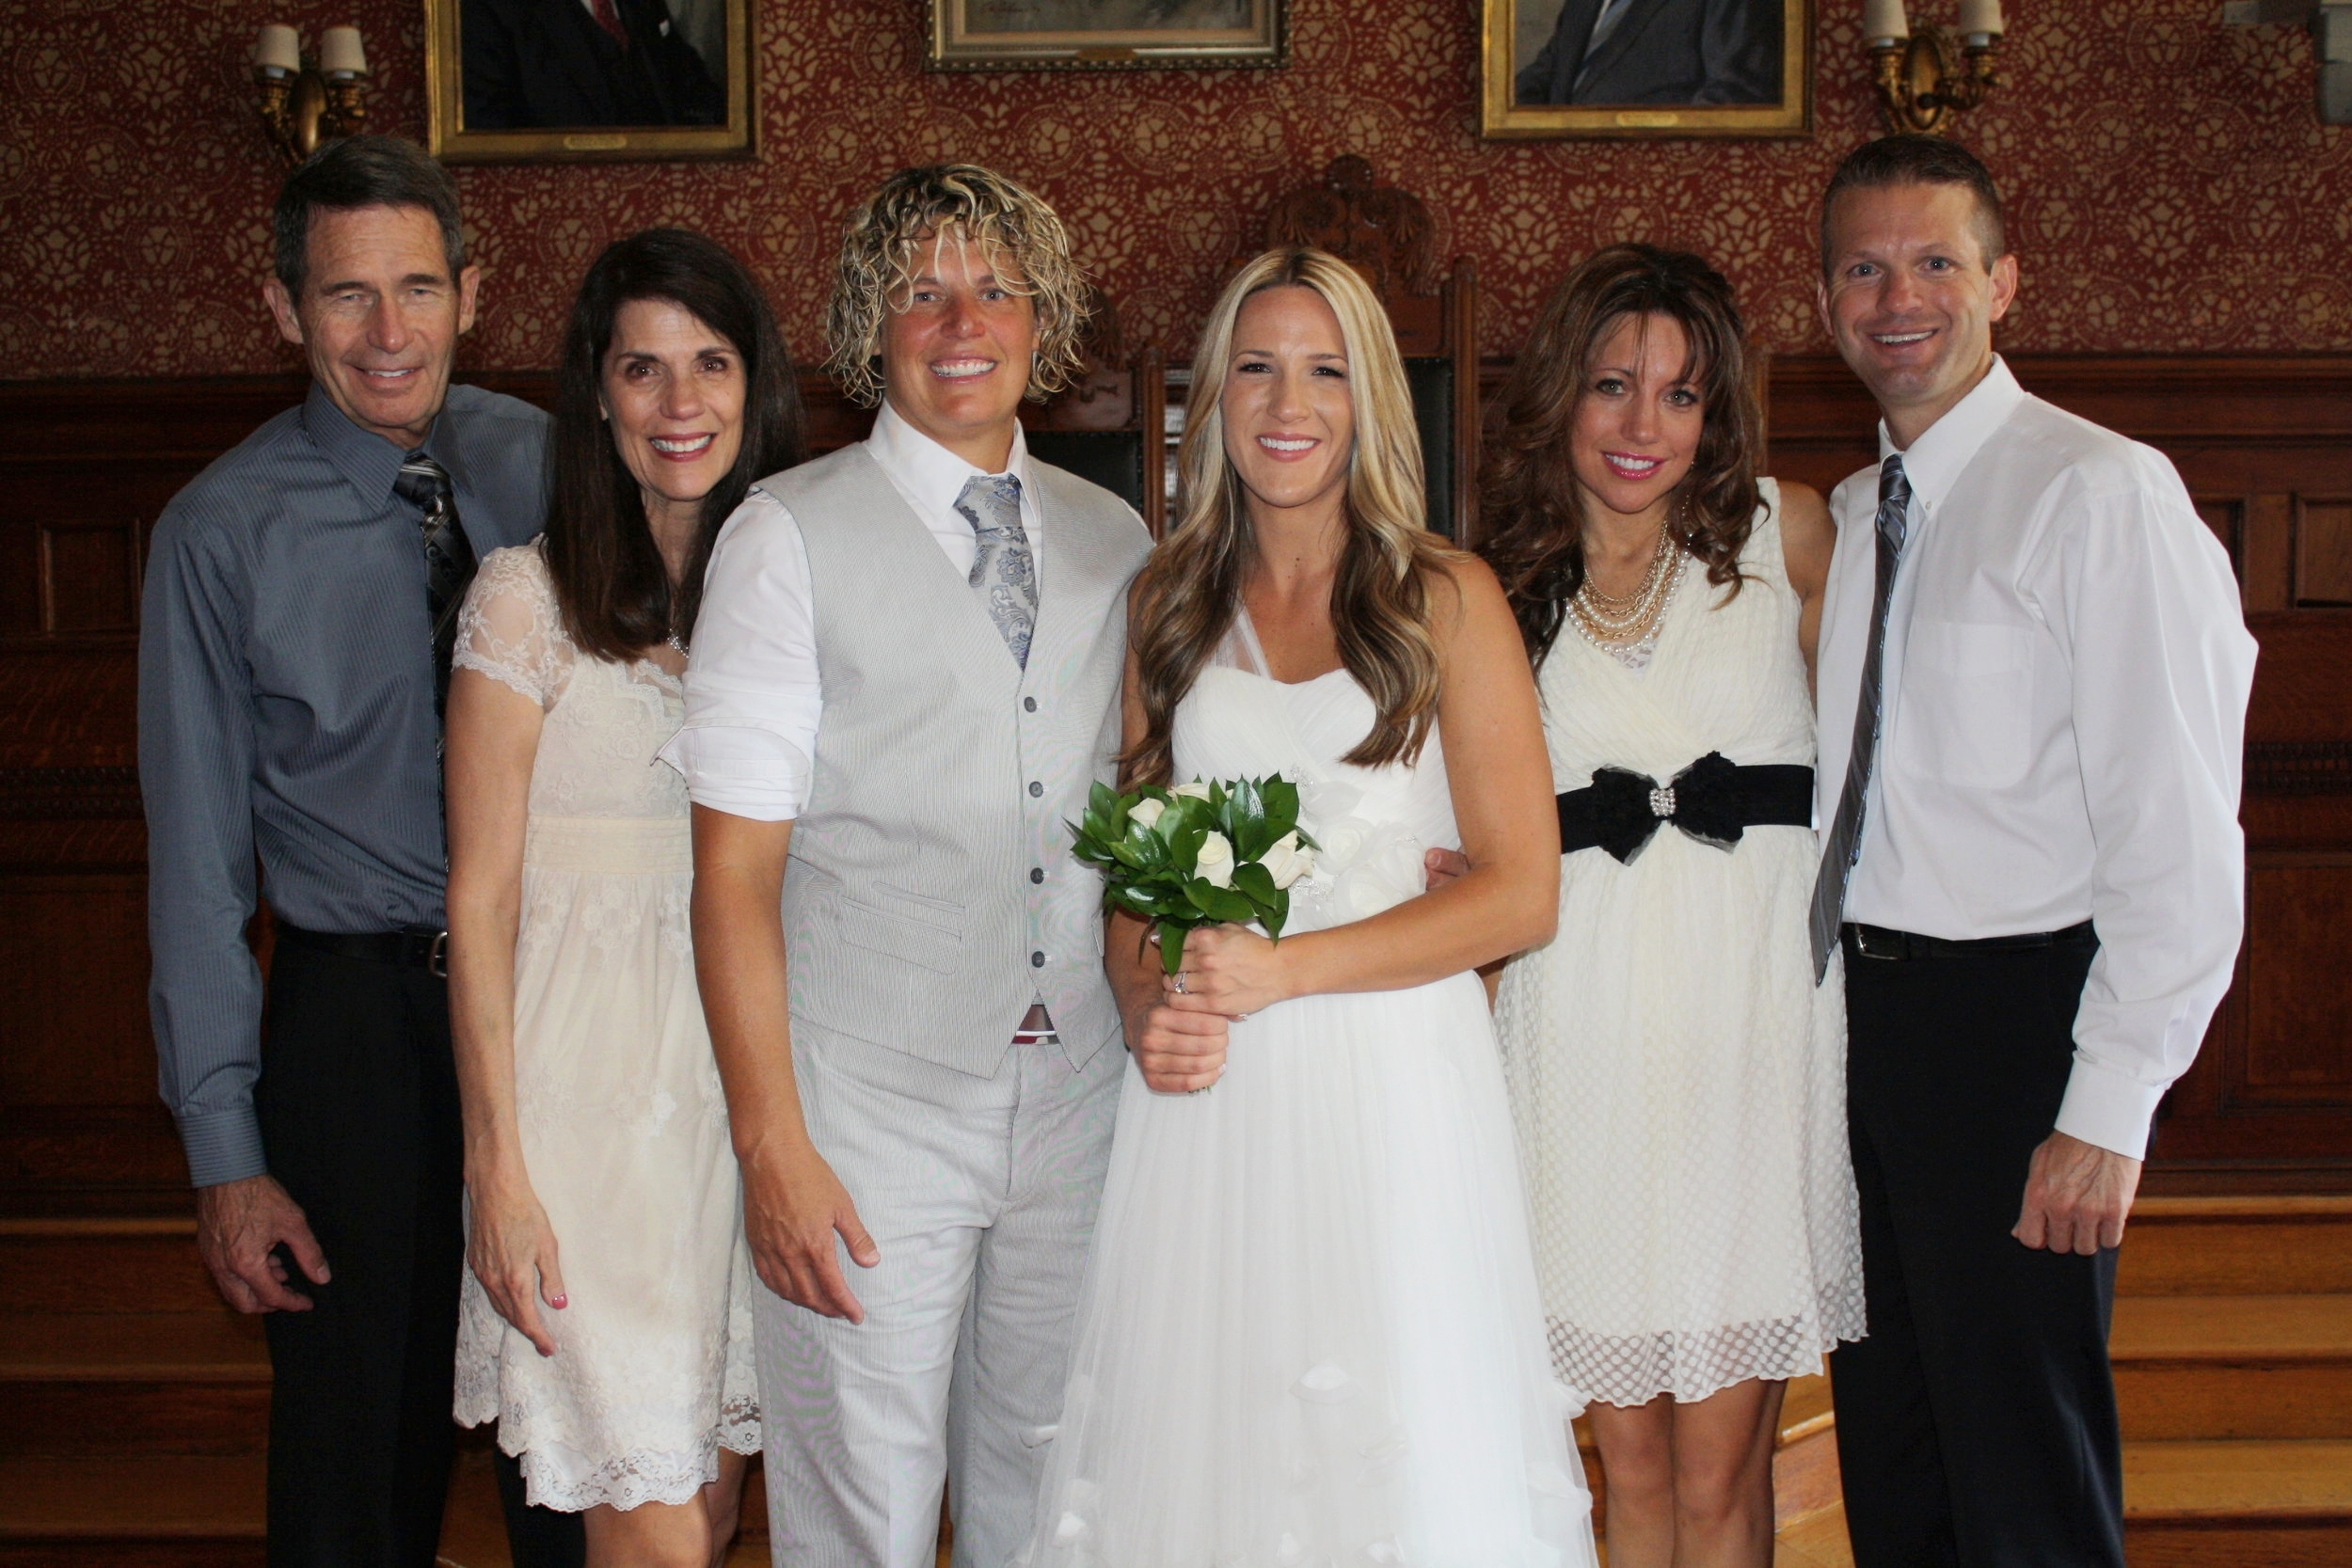 So grateful we got to share our special day with these amazing people!